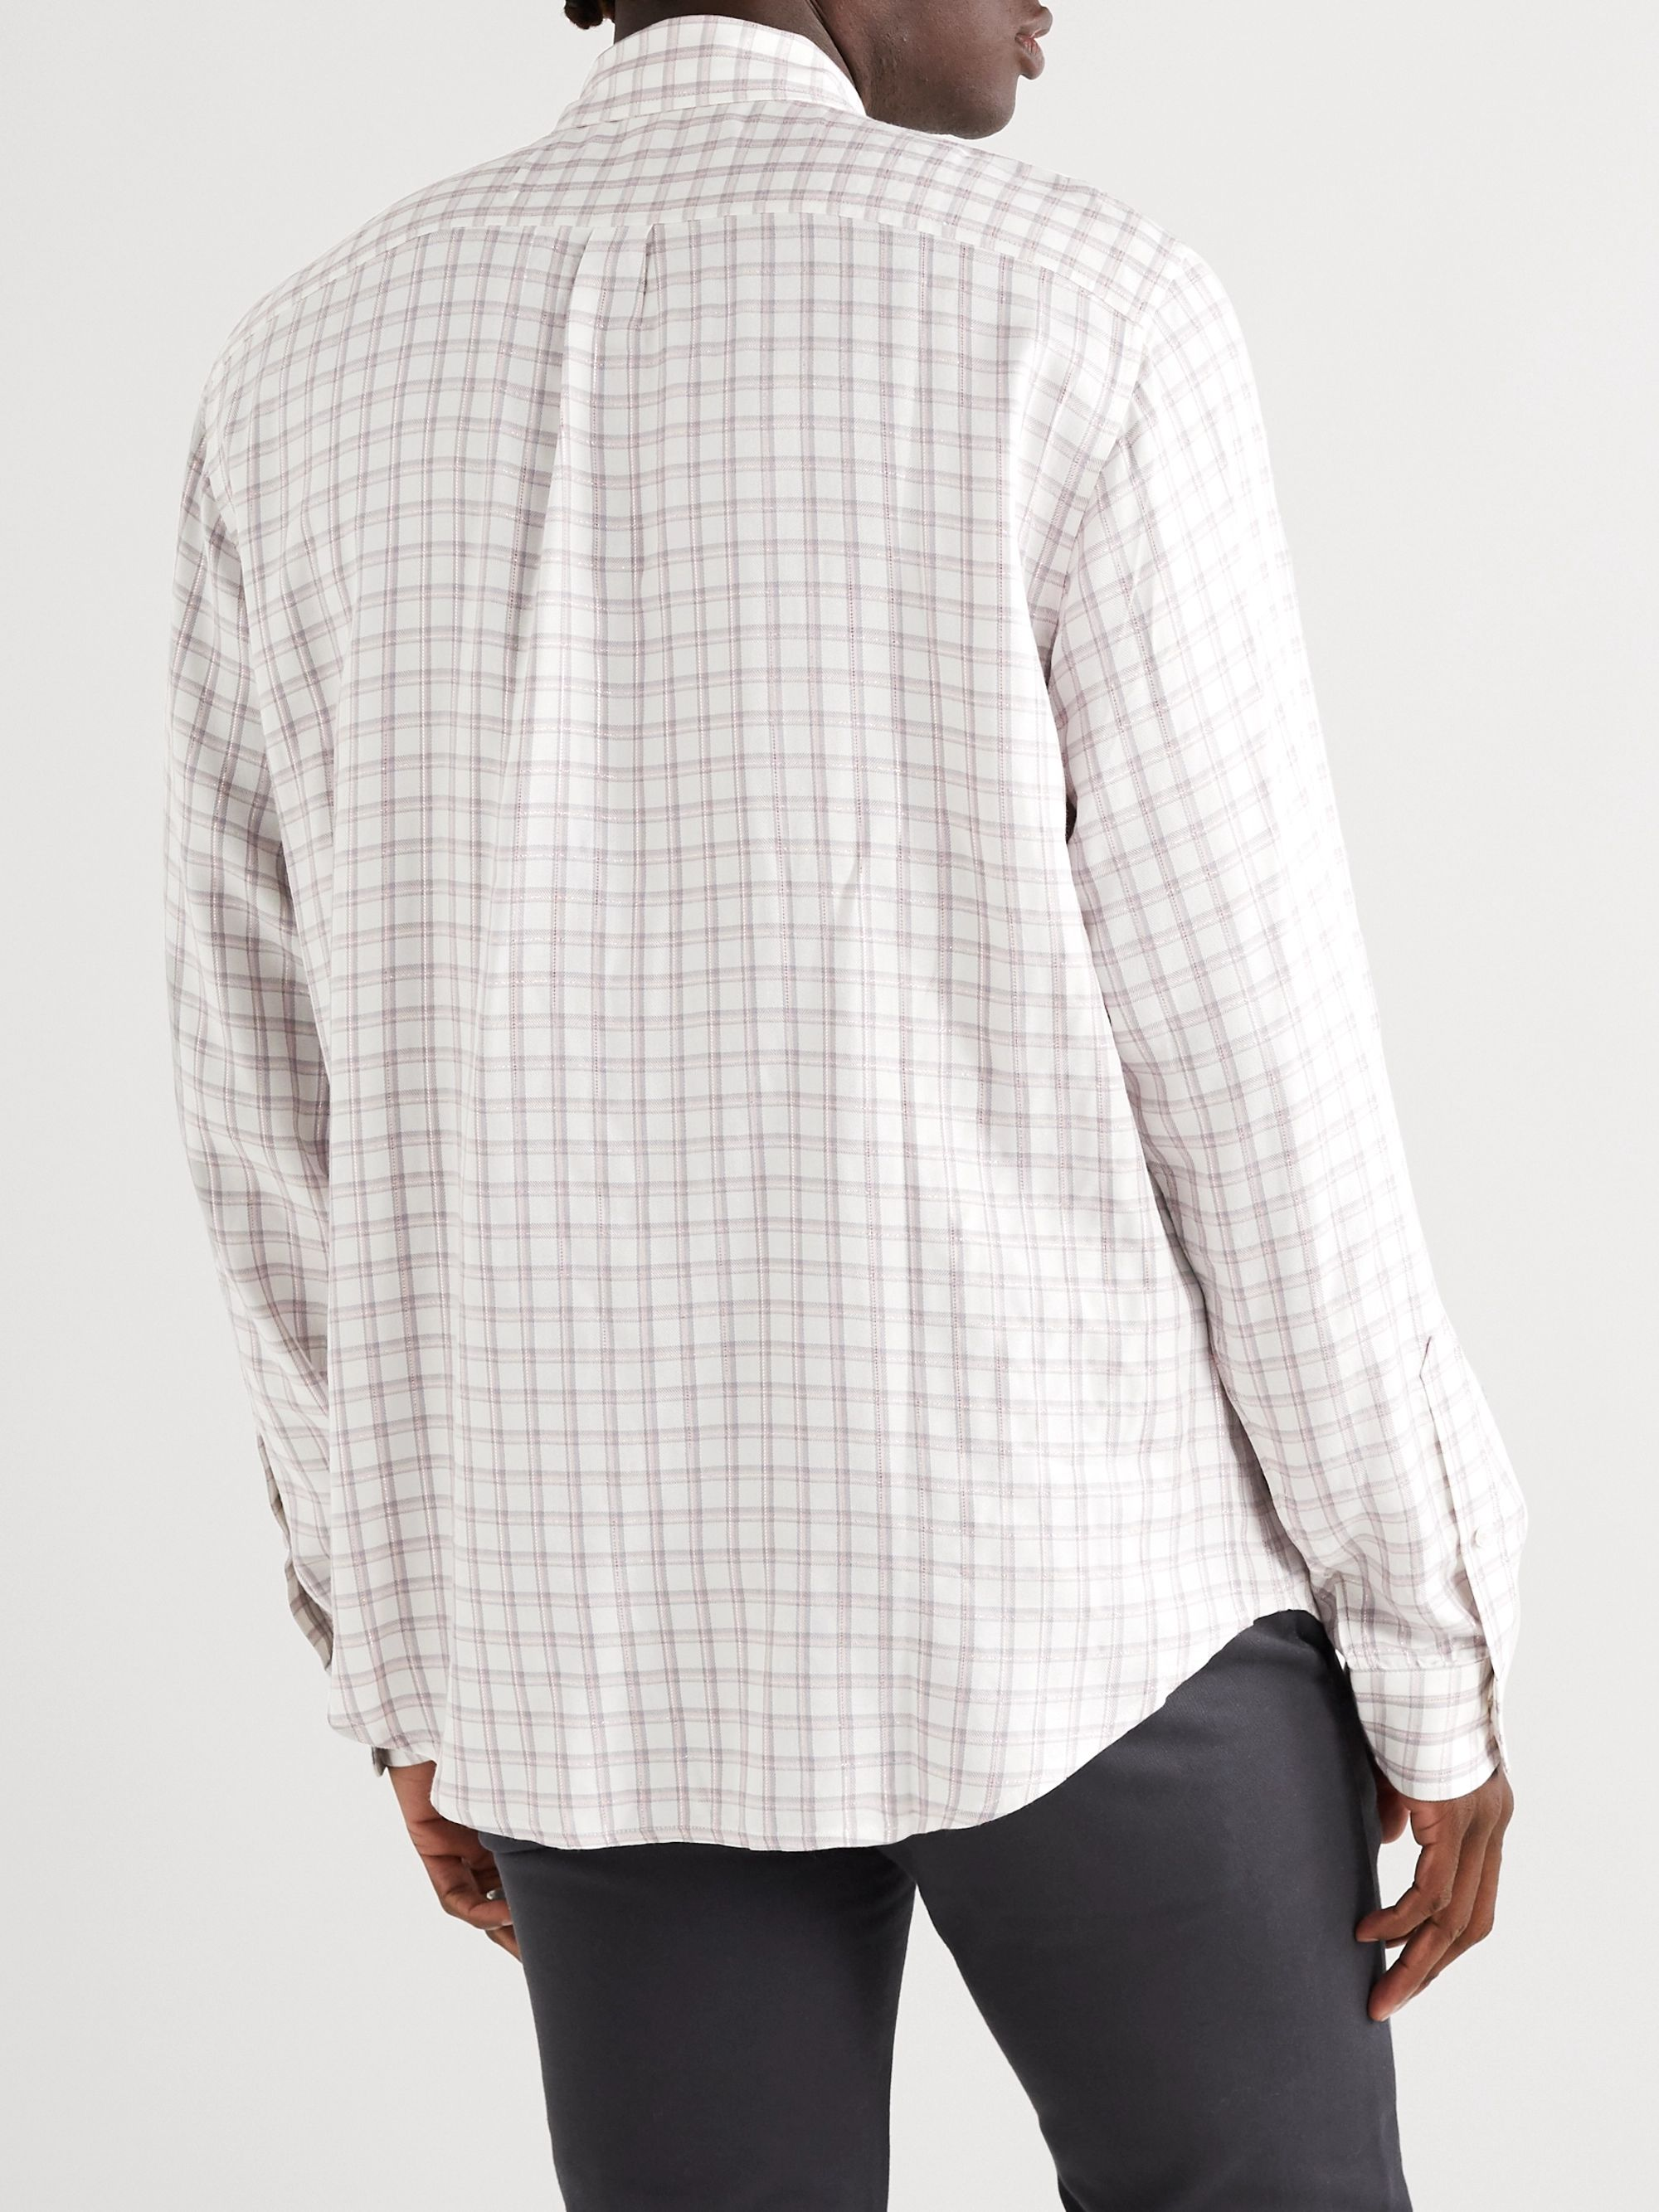 Noon Goons Jazzed Oversized Glittered Checked Jacquard Shirt